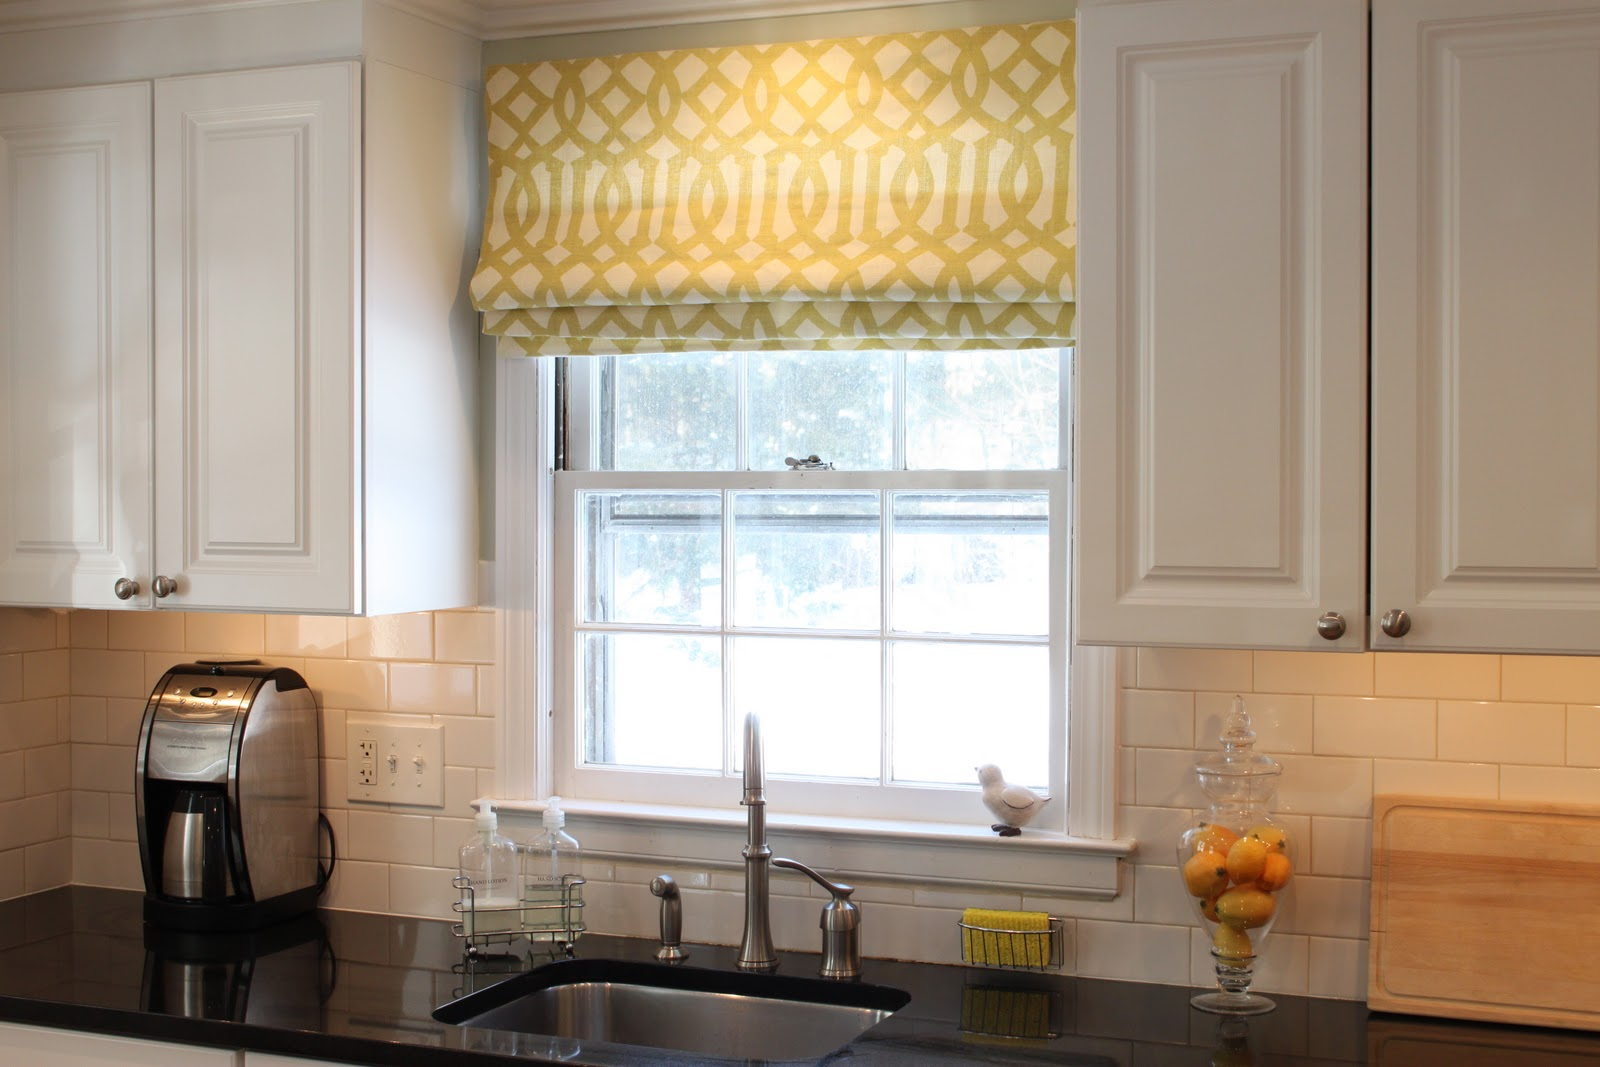 Window treatments by melissa window treatment style education roman shades - Curtain for kitchen door ...